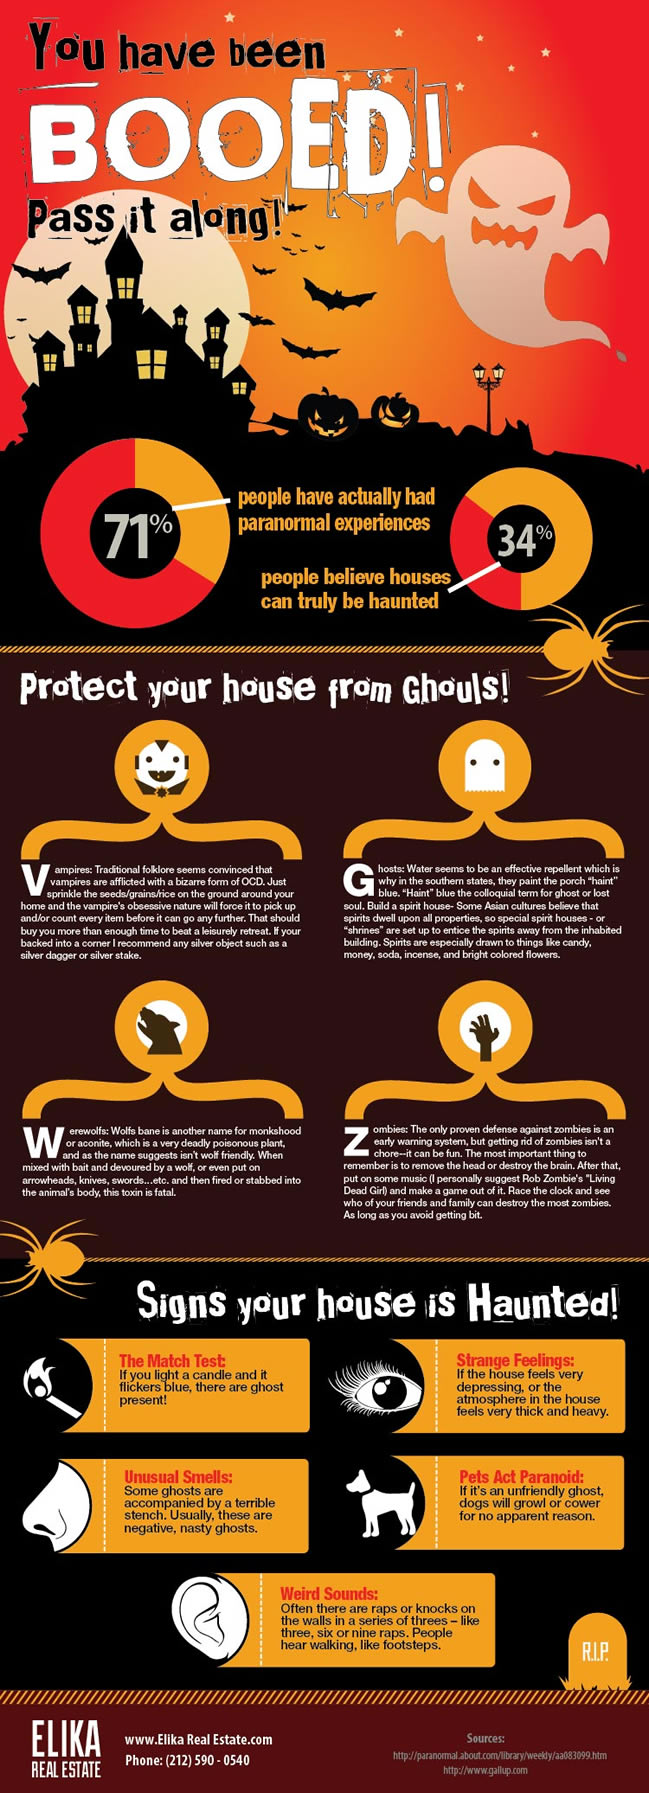 signs-your-house-is-haunted_52582666dfb17